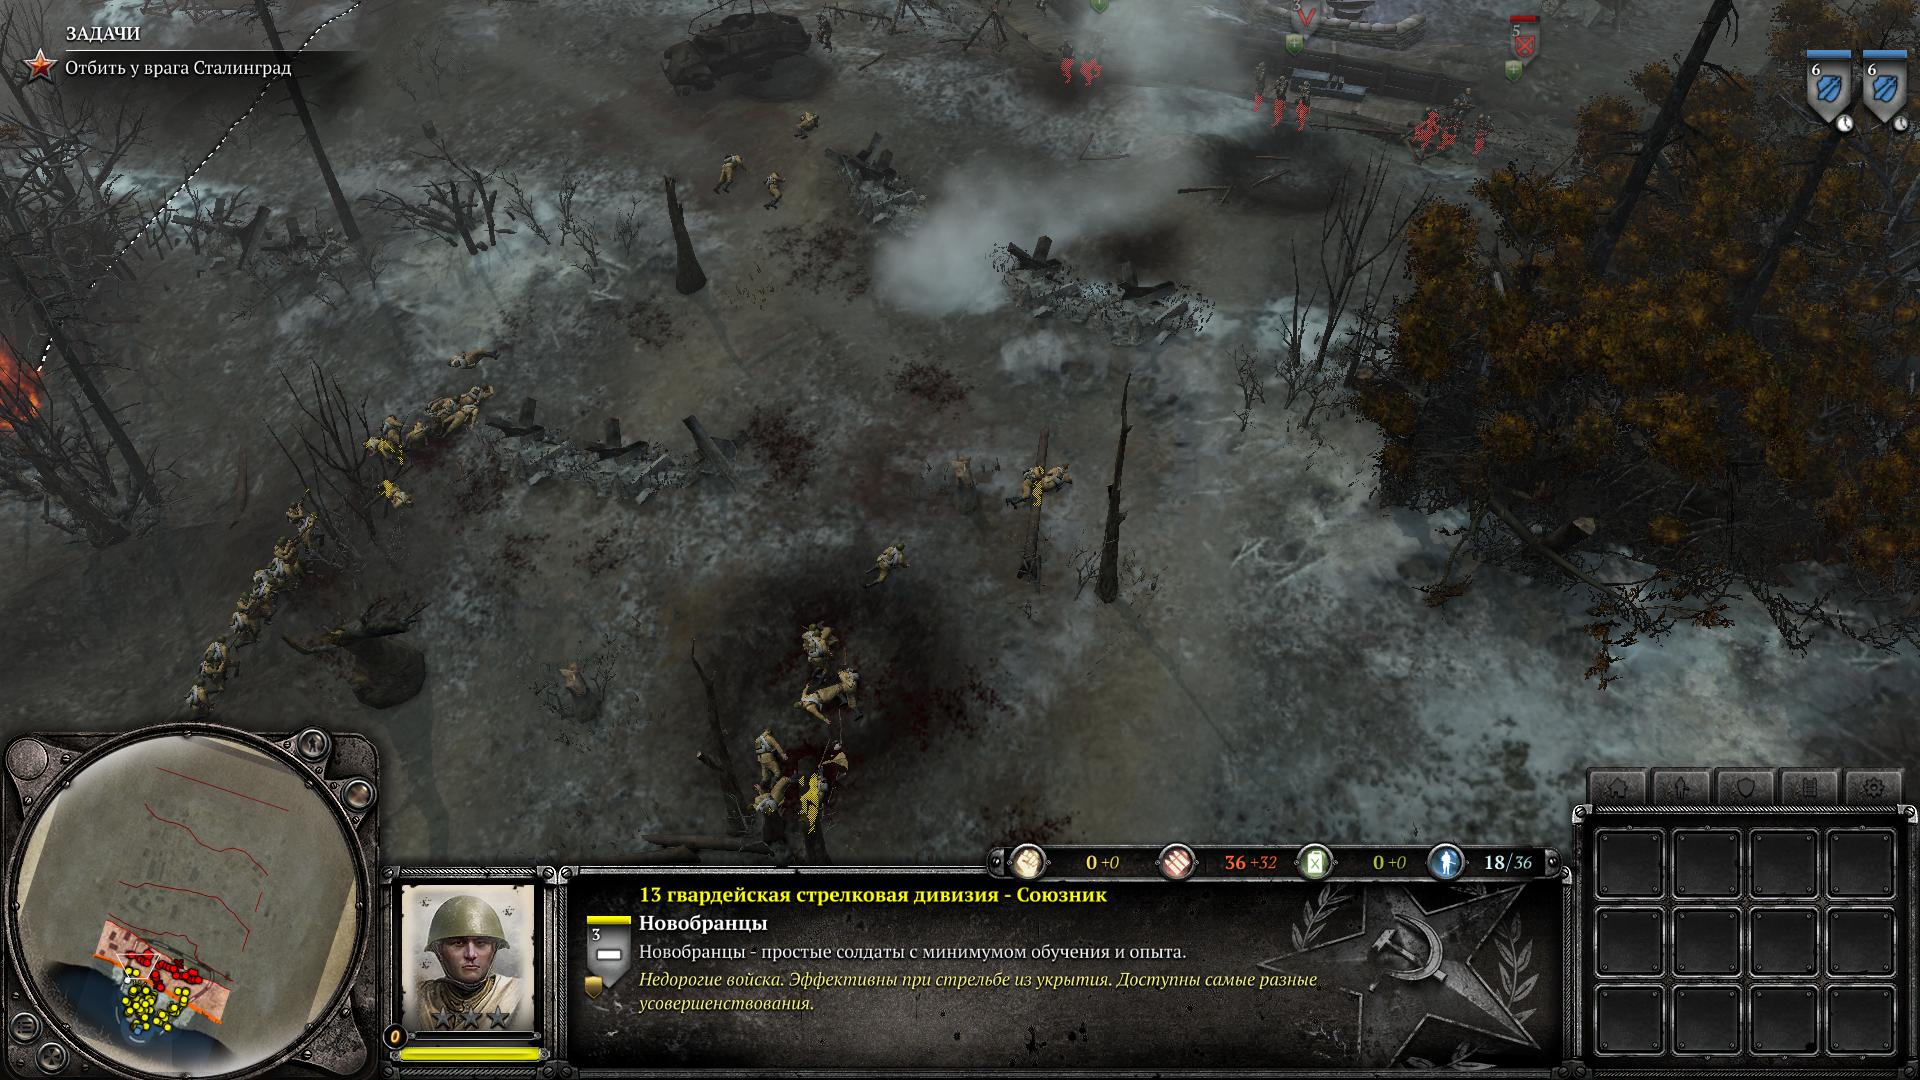 Company of Heroes 2: Master Collection [v 4.0.0.21699 + DLC's] (2014) PC   RePack by R.G. Механики - Скриншот 1